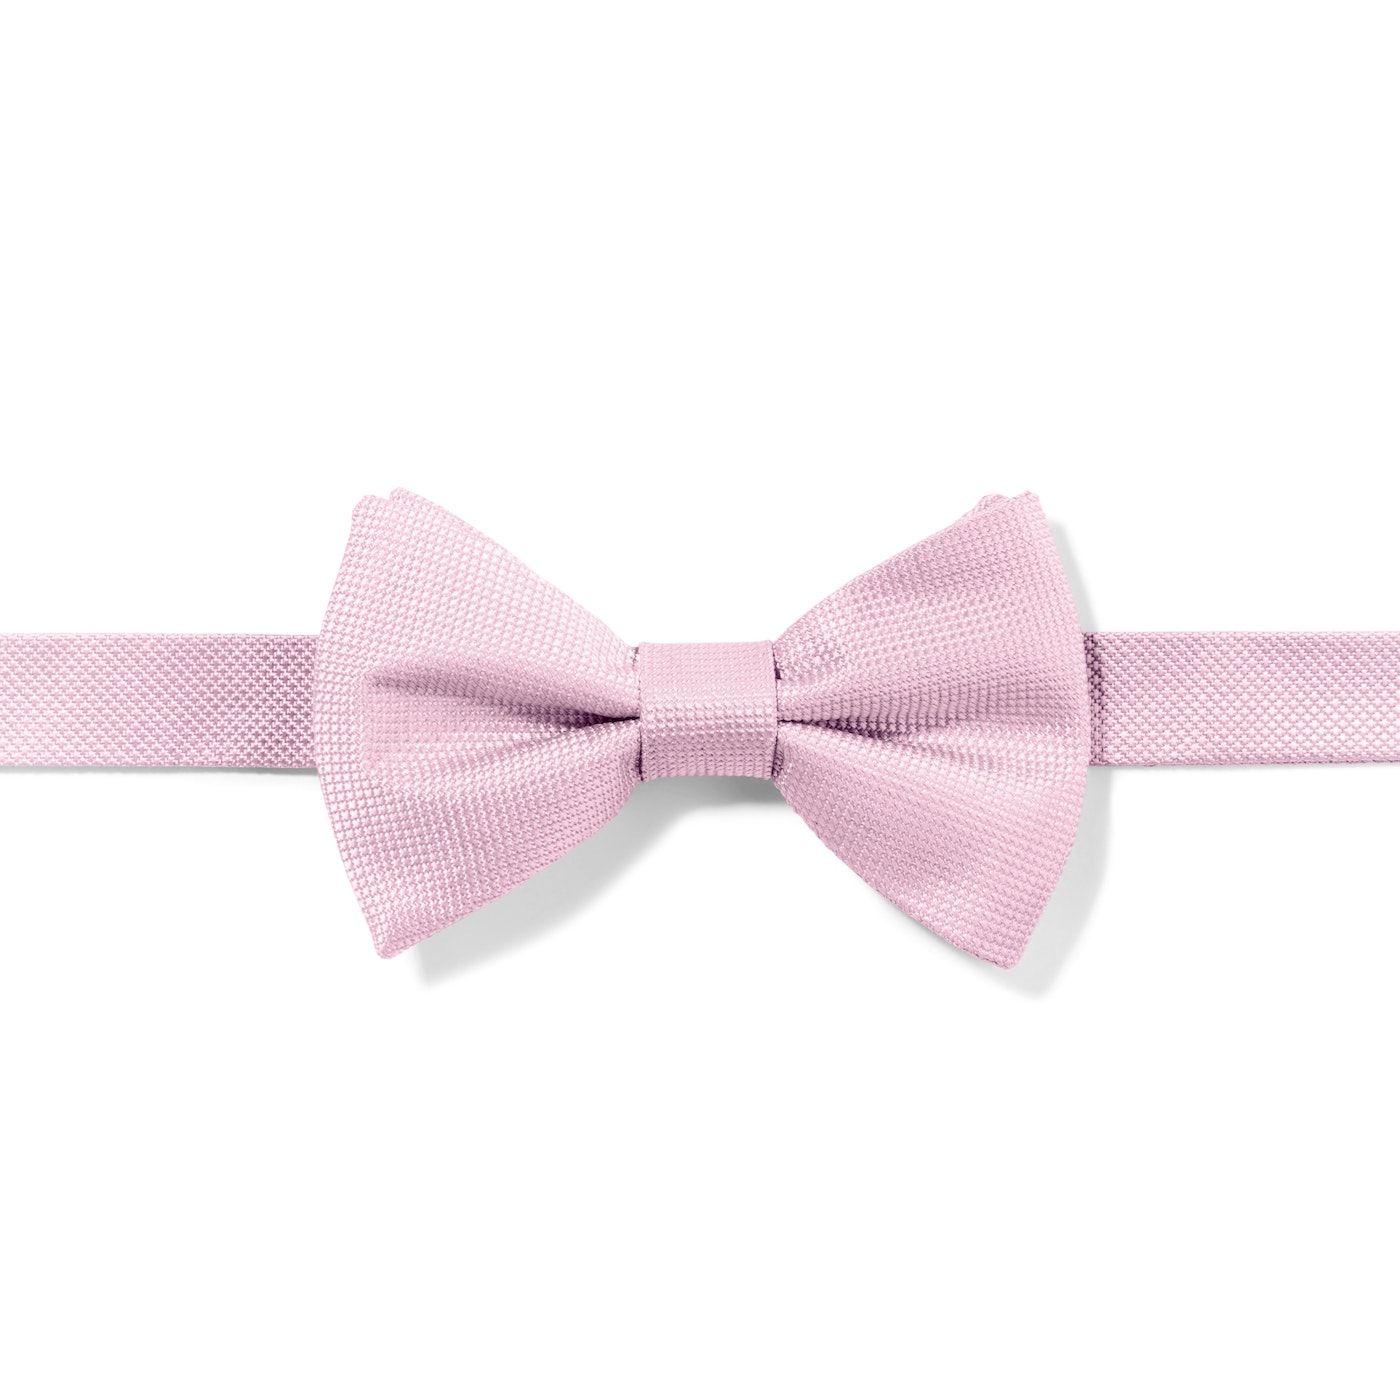 Pink Textured Micro Square Pre-Tied Bow Tie